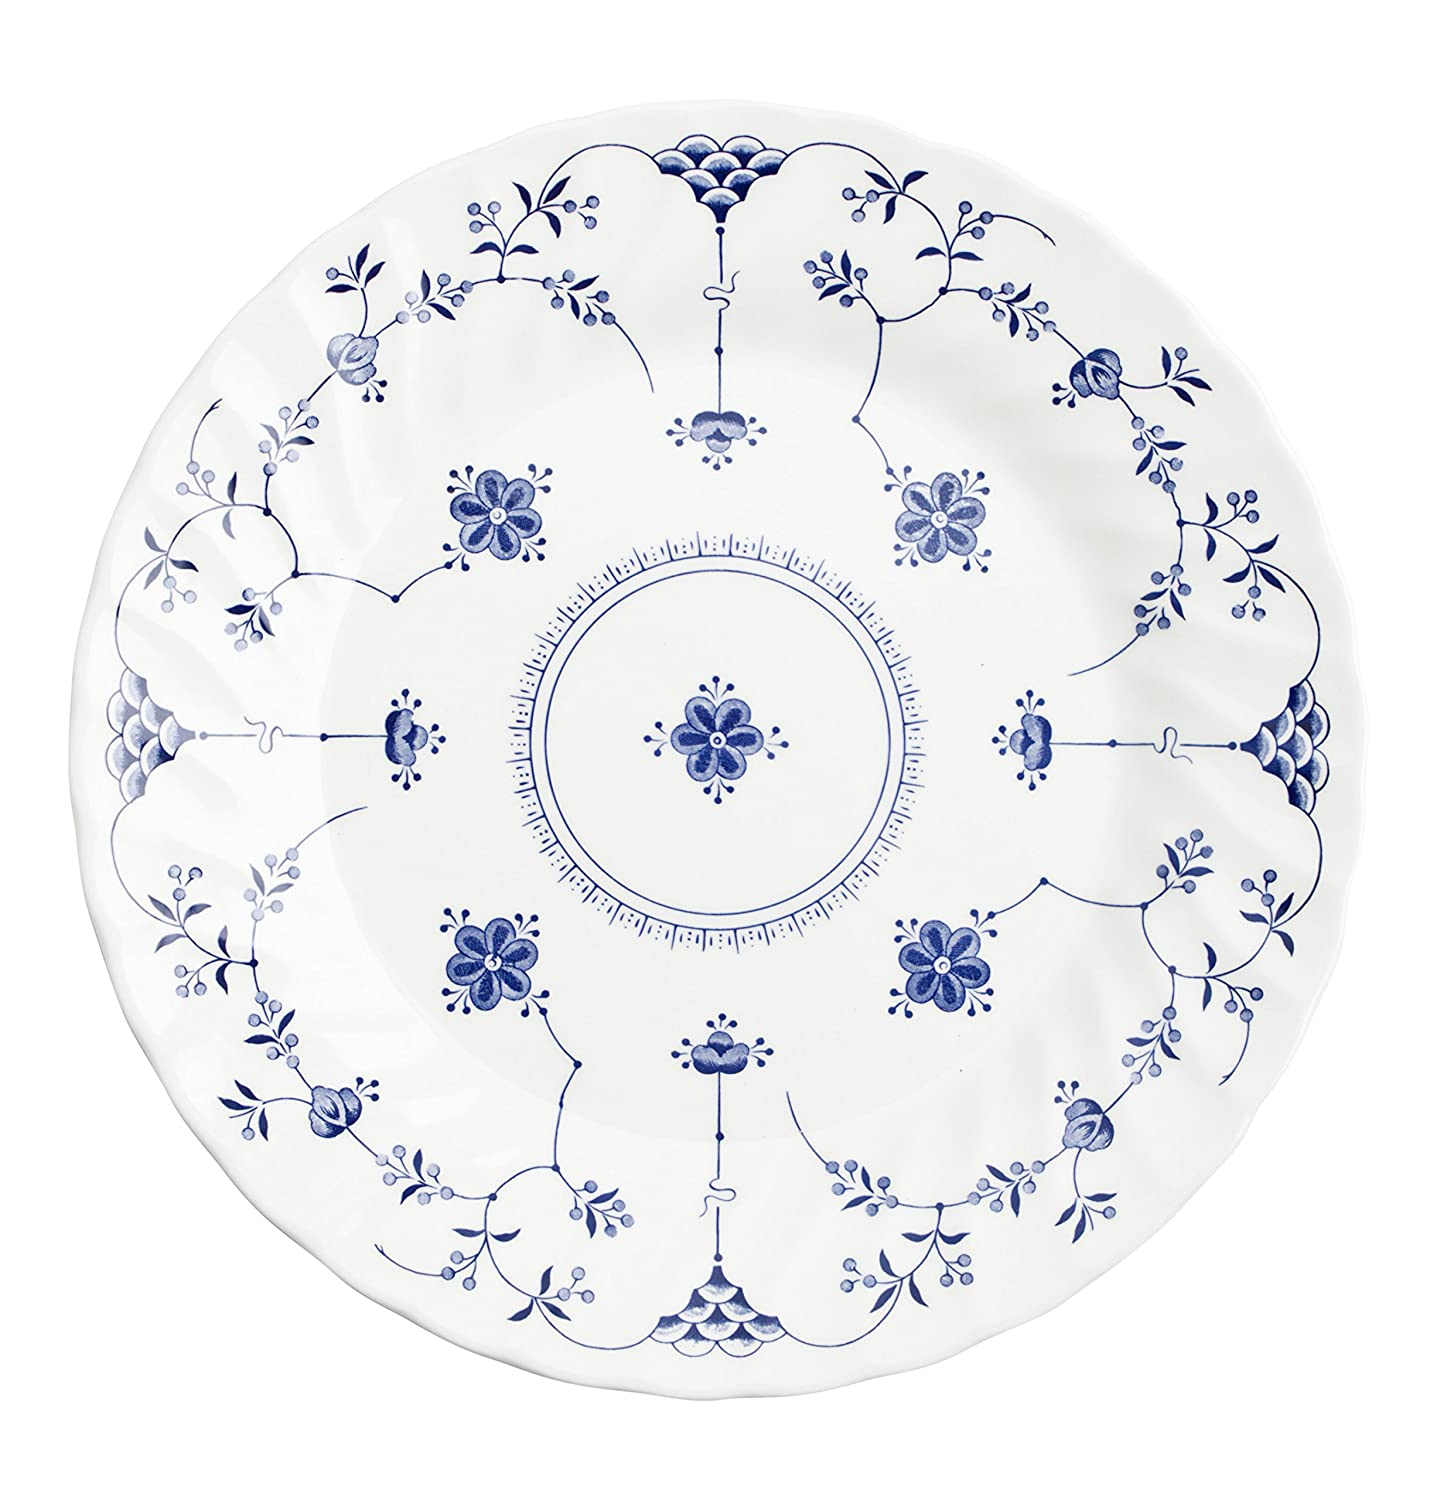 Churchill 4969110 – Crockery Set 18 Pieces Finland Churchil, White, 26.3 x 20.2 x 26.5 cm ARCXV